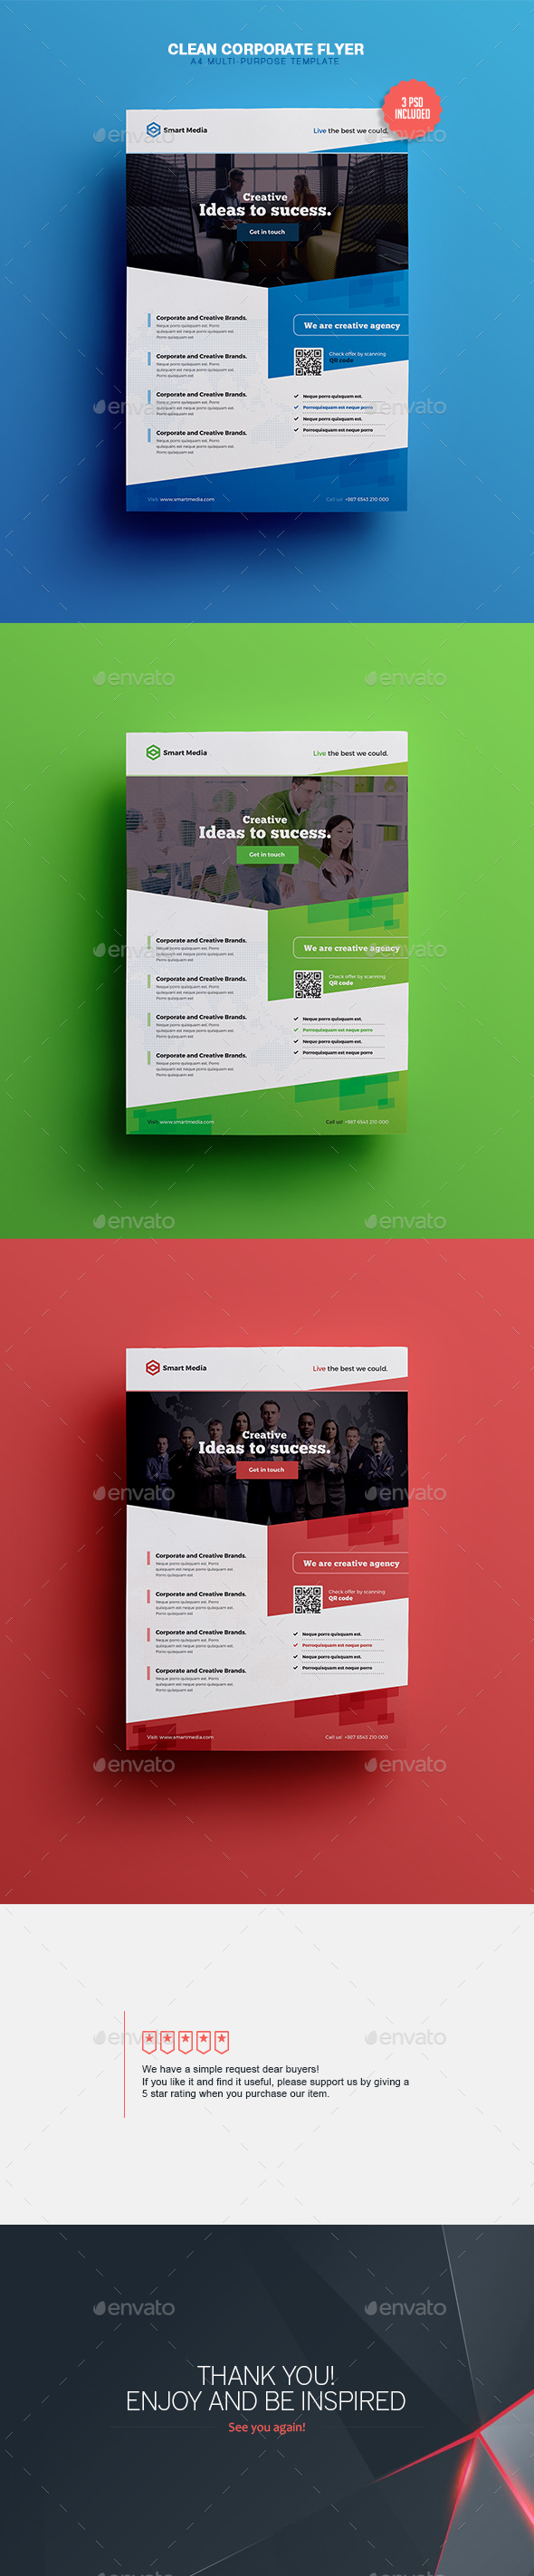 Clean & Corporate - A4 Flyer Template - Corporate Flyers